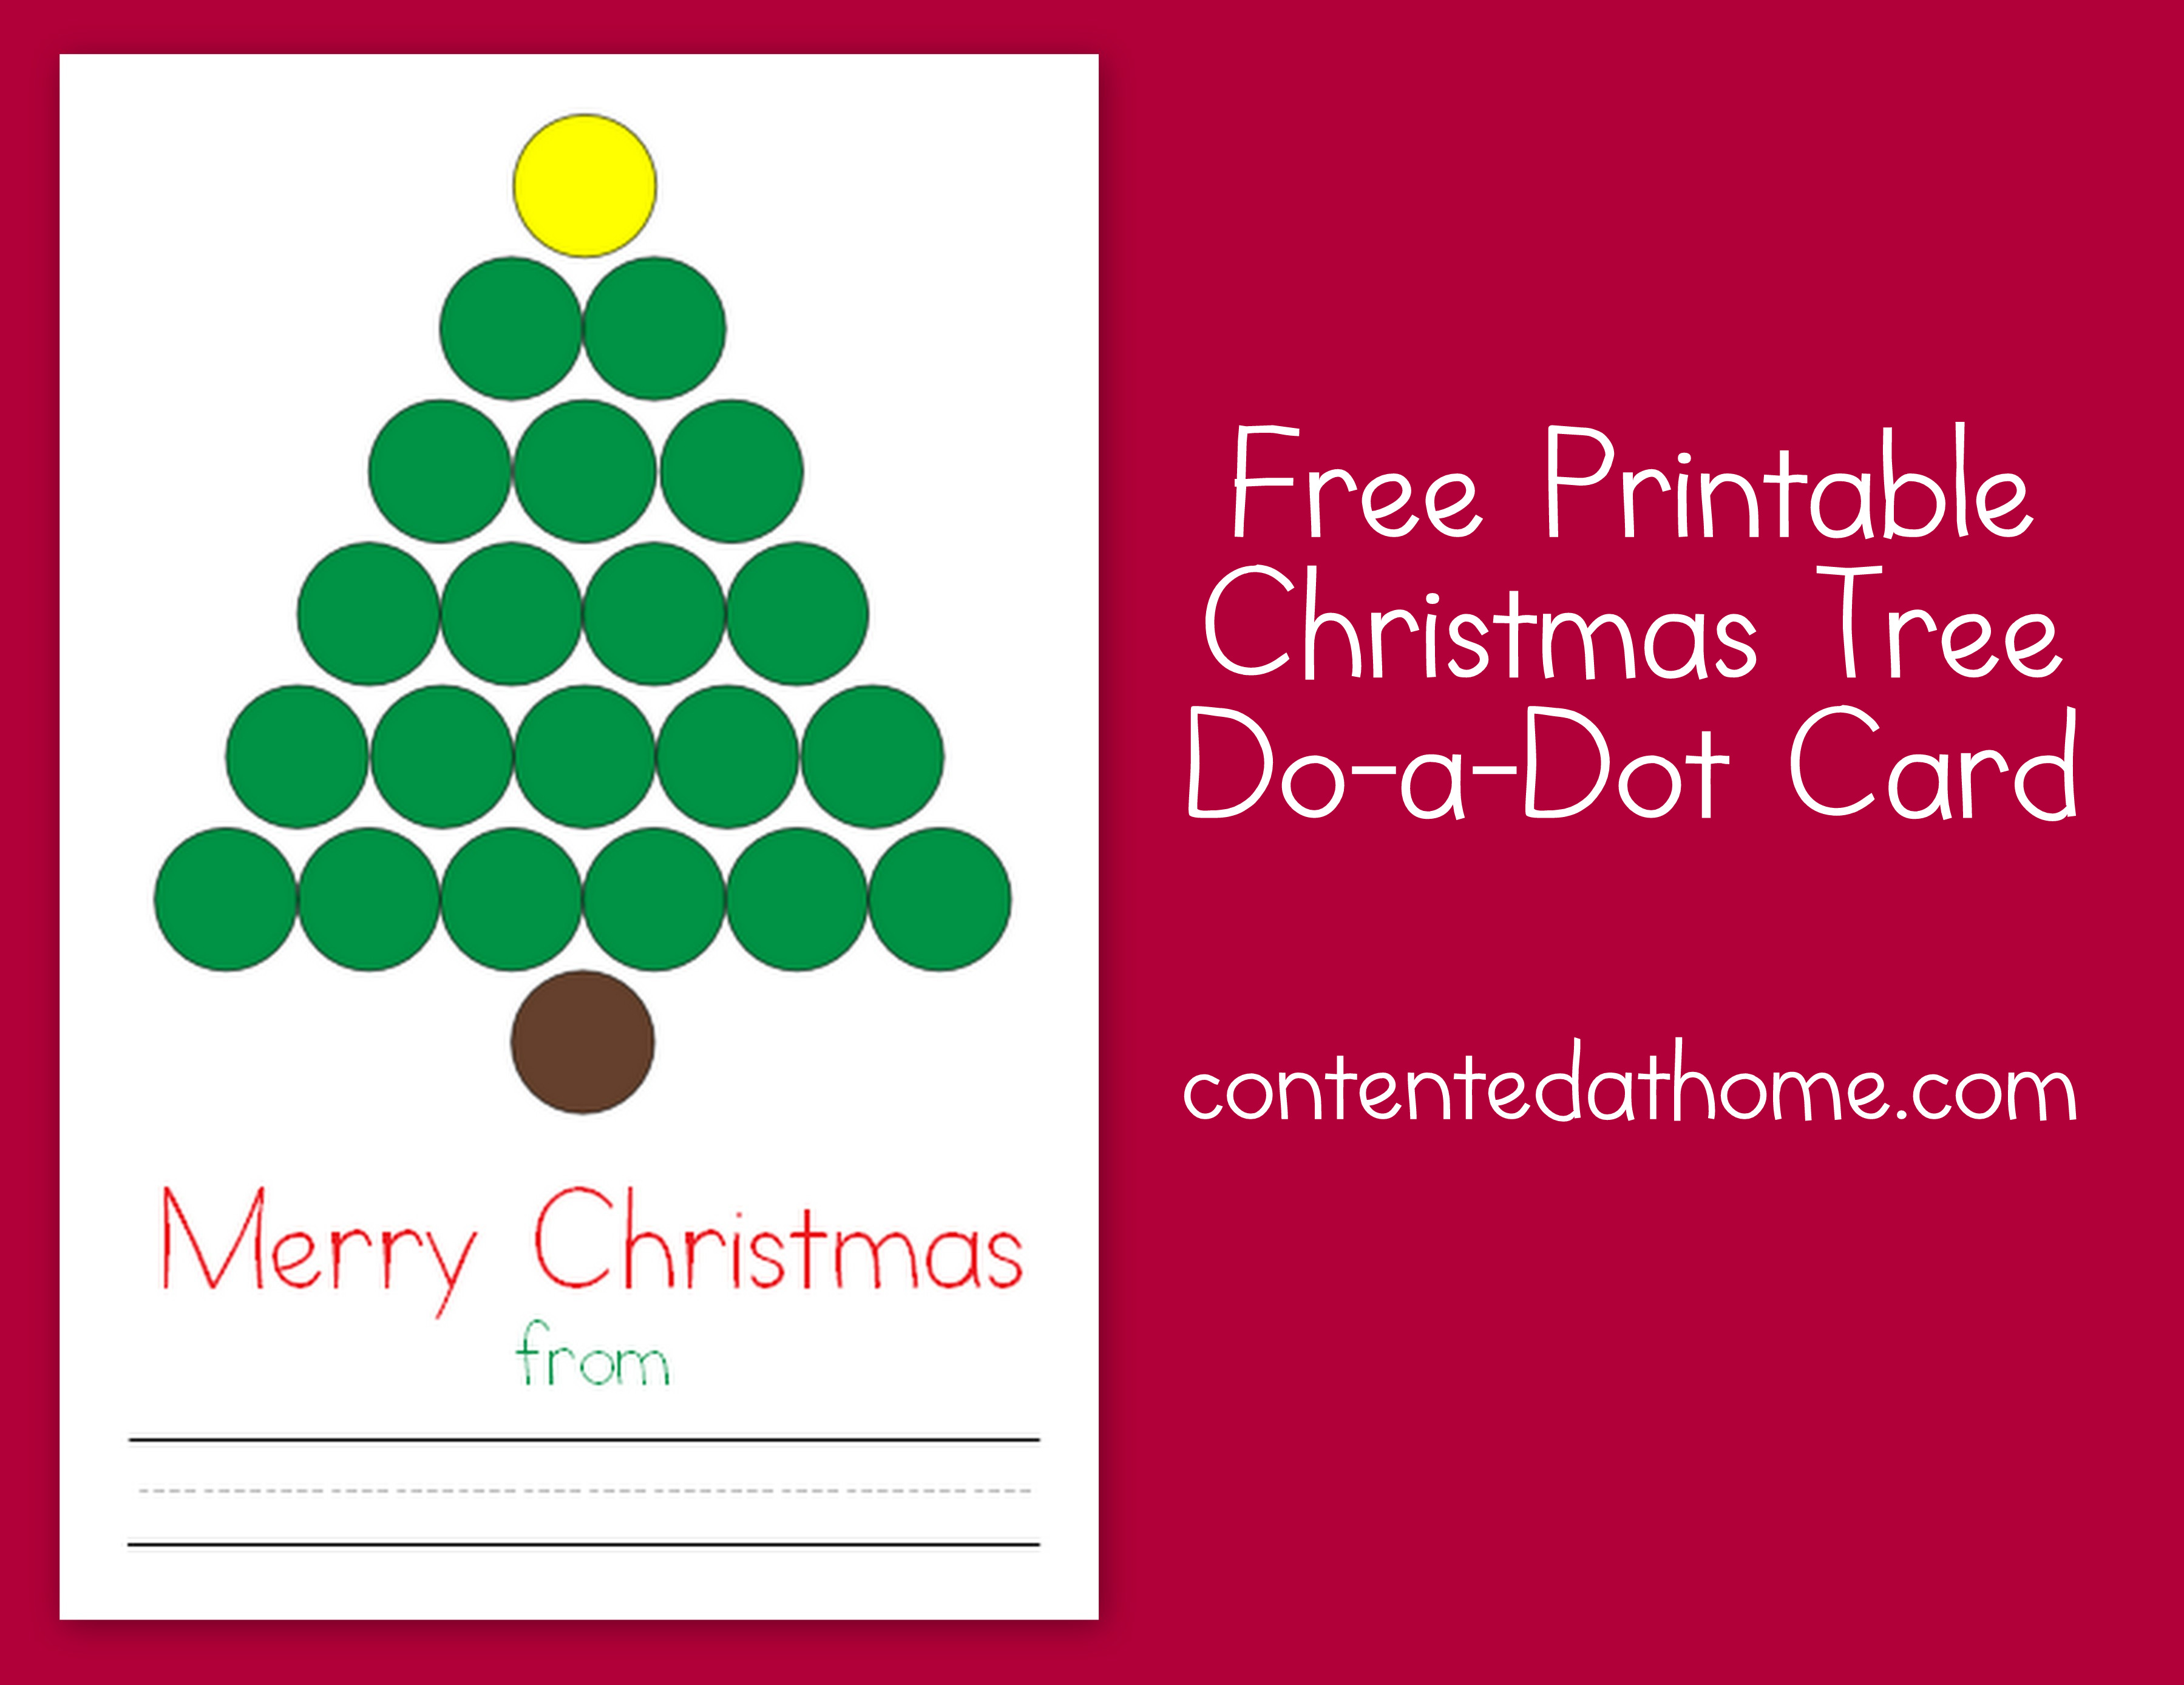 Christmas Tree Do-a-Dot Card | Contented at Home